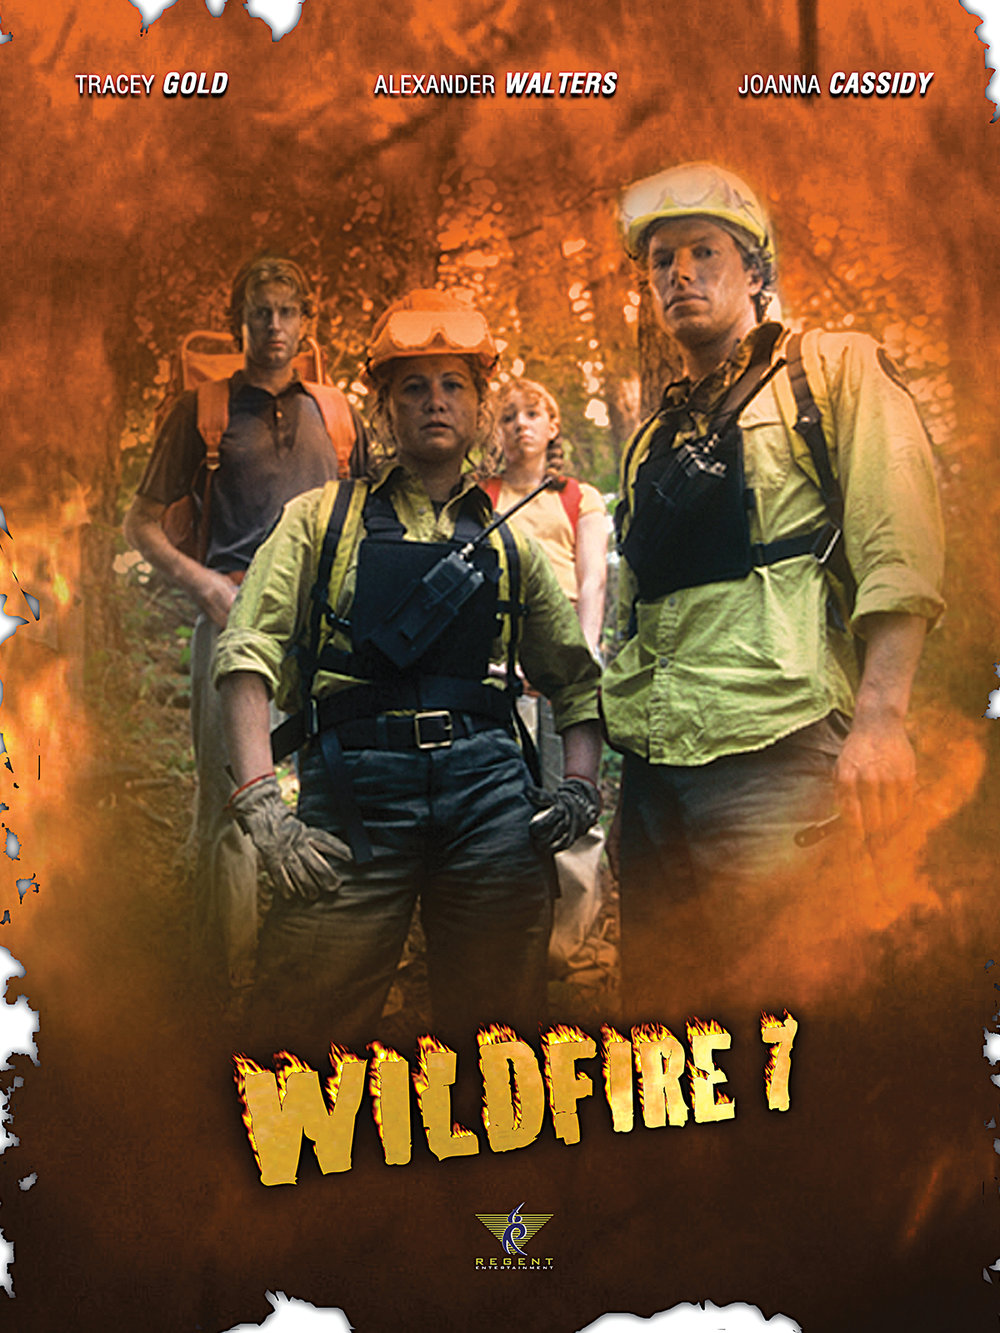 Here-Wildfire7-Full-Image-en-US.jpg